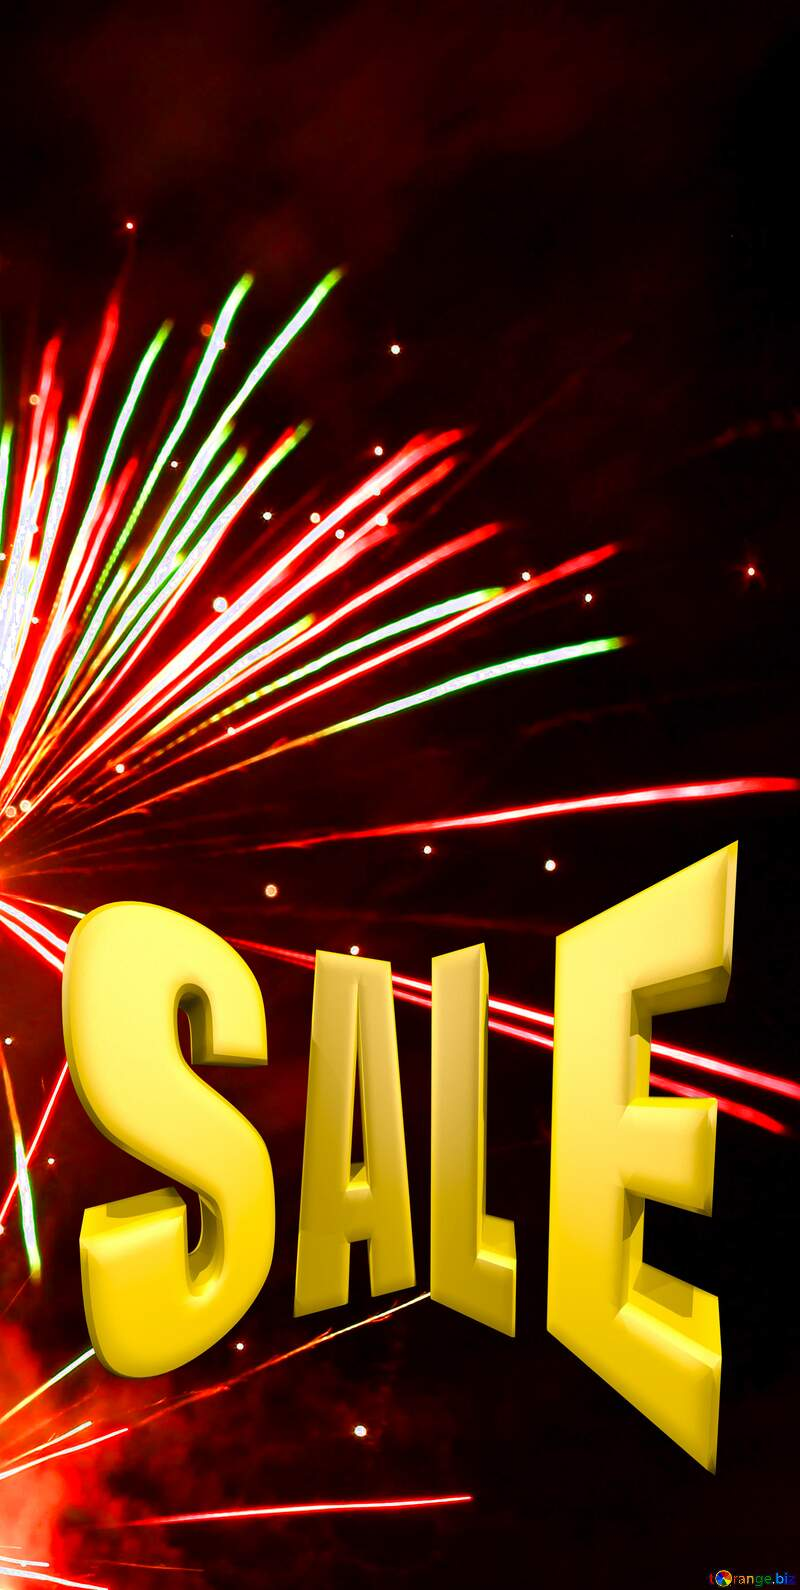 New years Fireworks pattern background Sale offer discount template Sales promotion 3d Gold letters №37177